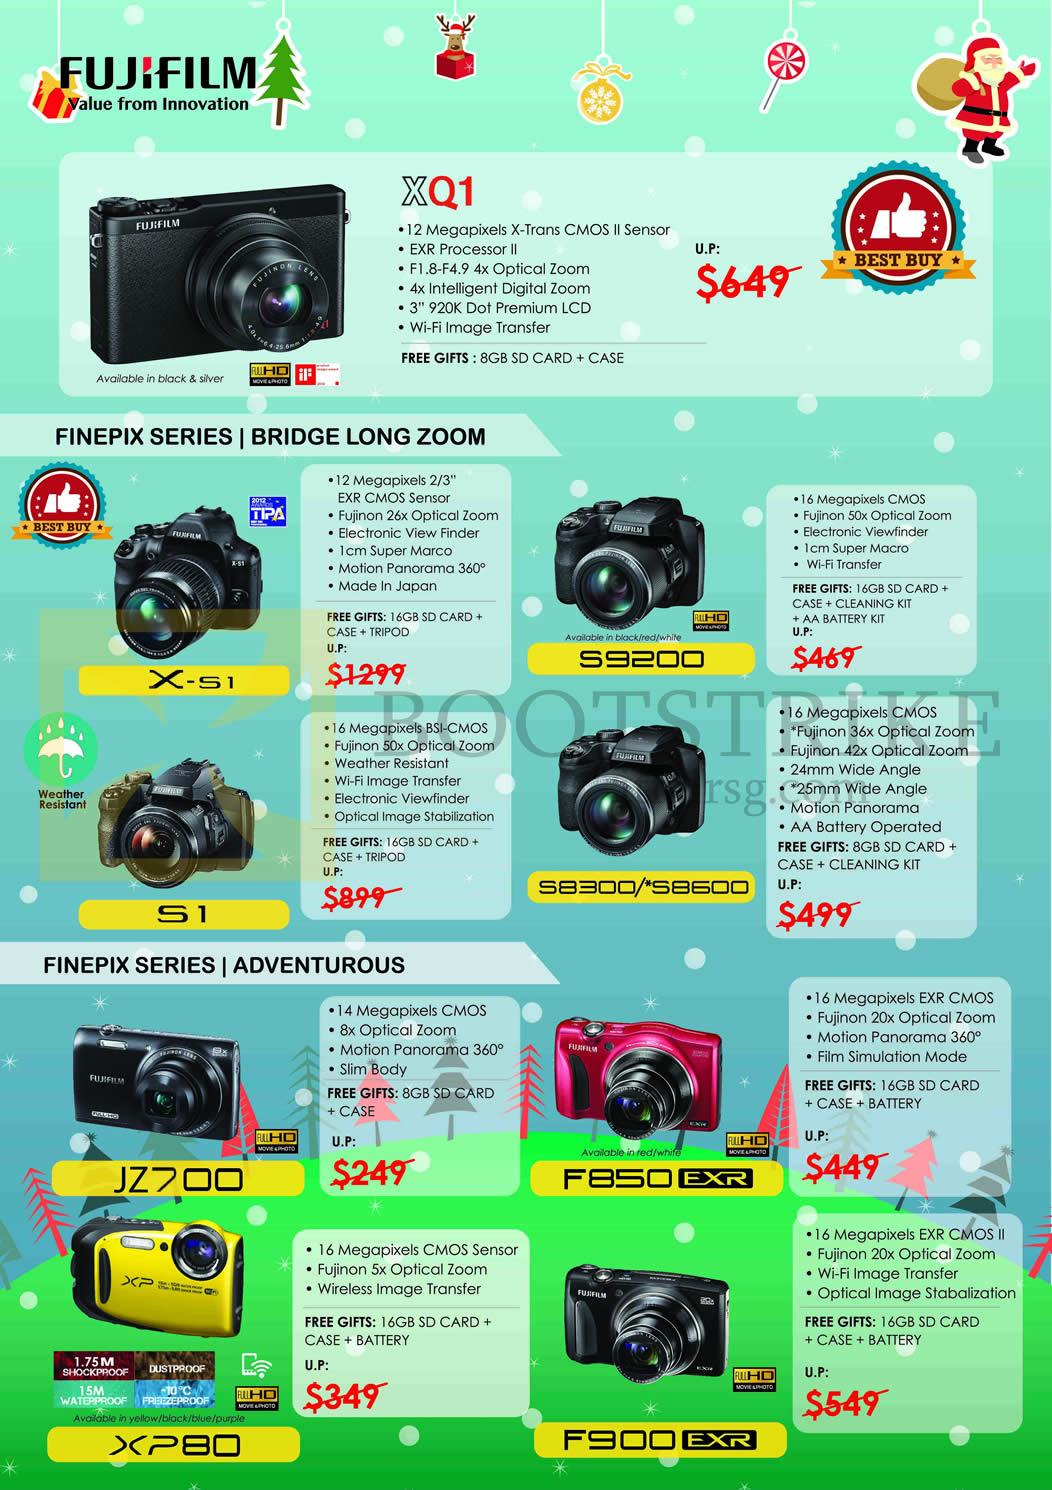 Fujifilm (No Prices) Digital Cameras X-S1, S9200, S8300, S8600, S1, F900, X-51, JZ700, F850, XP80